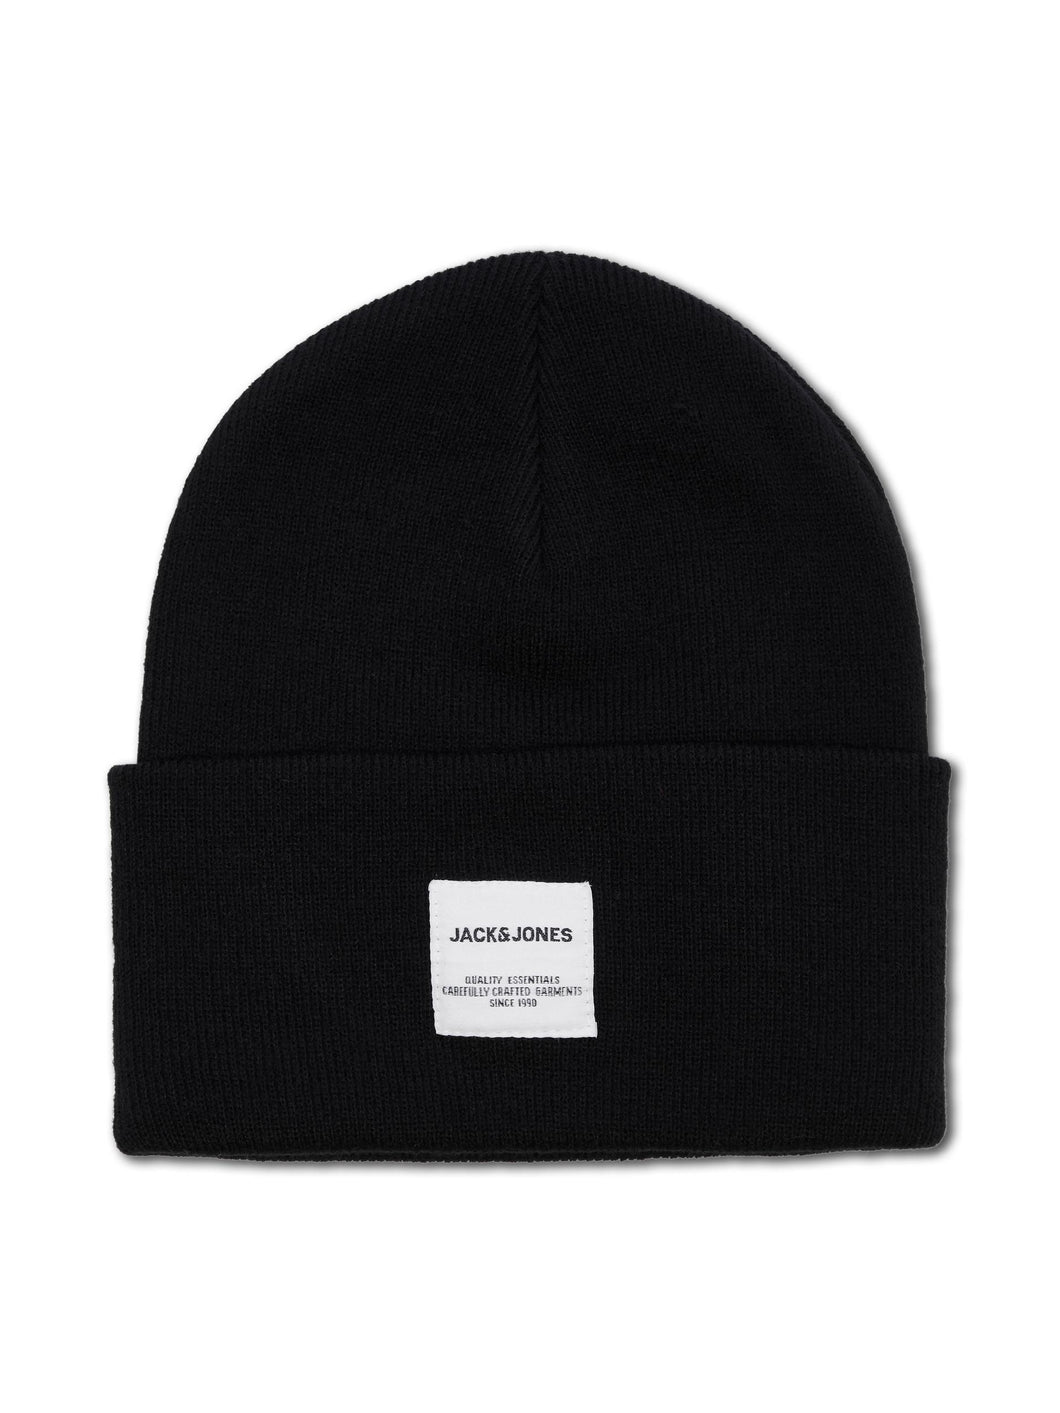 Long Knit Beanie - Black / One Size - MÖSSA 12150627,